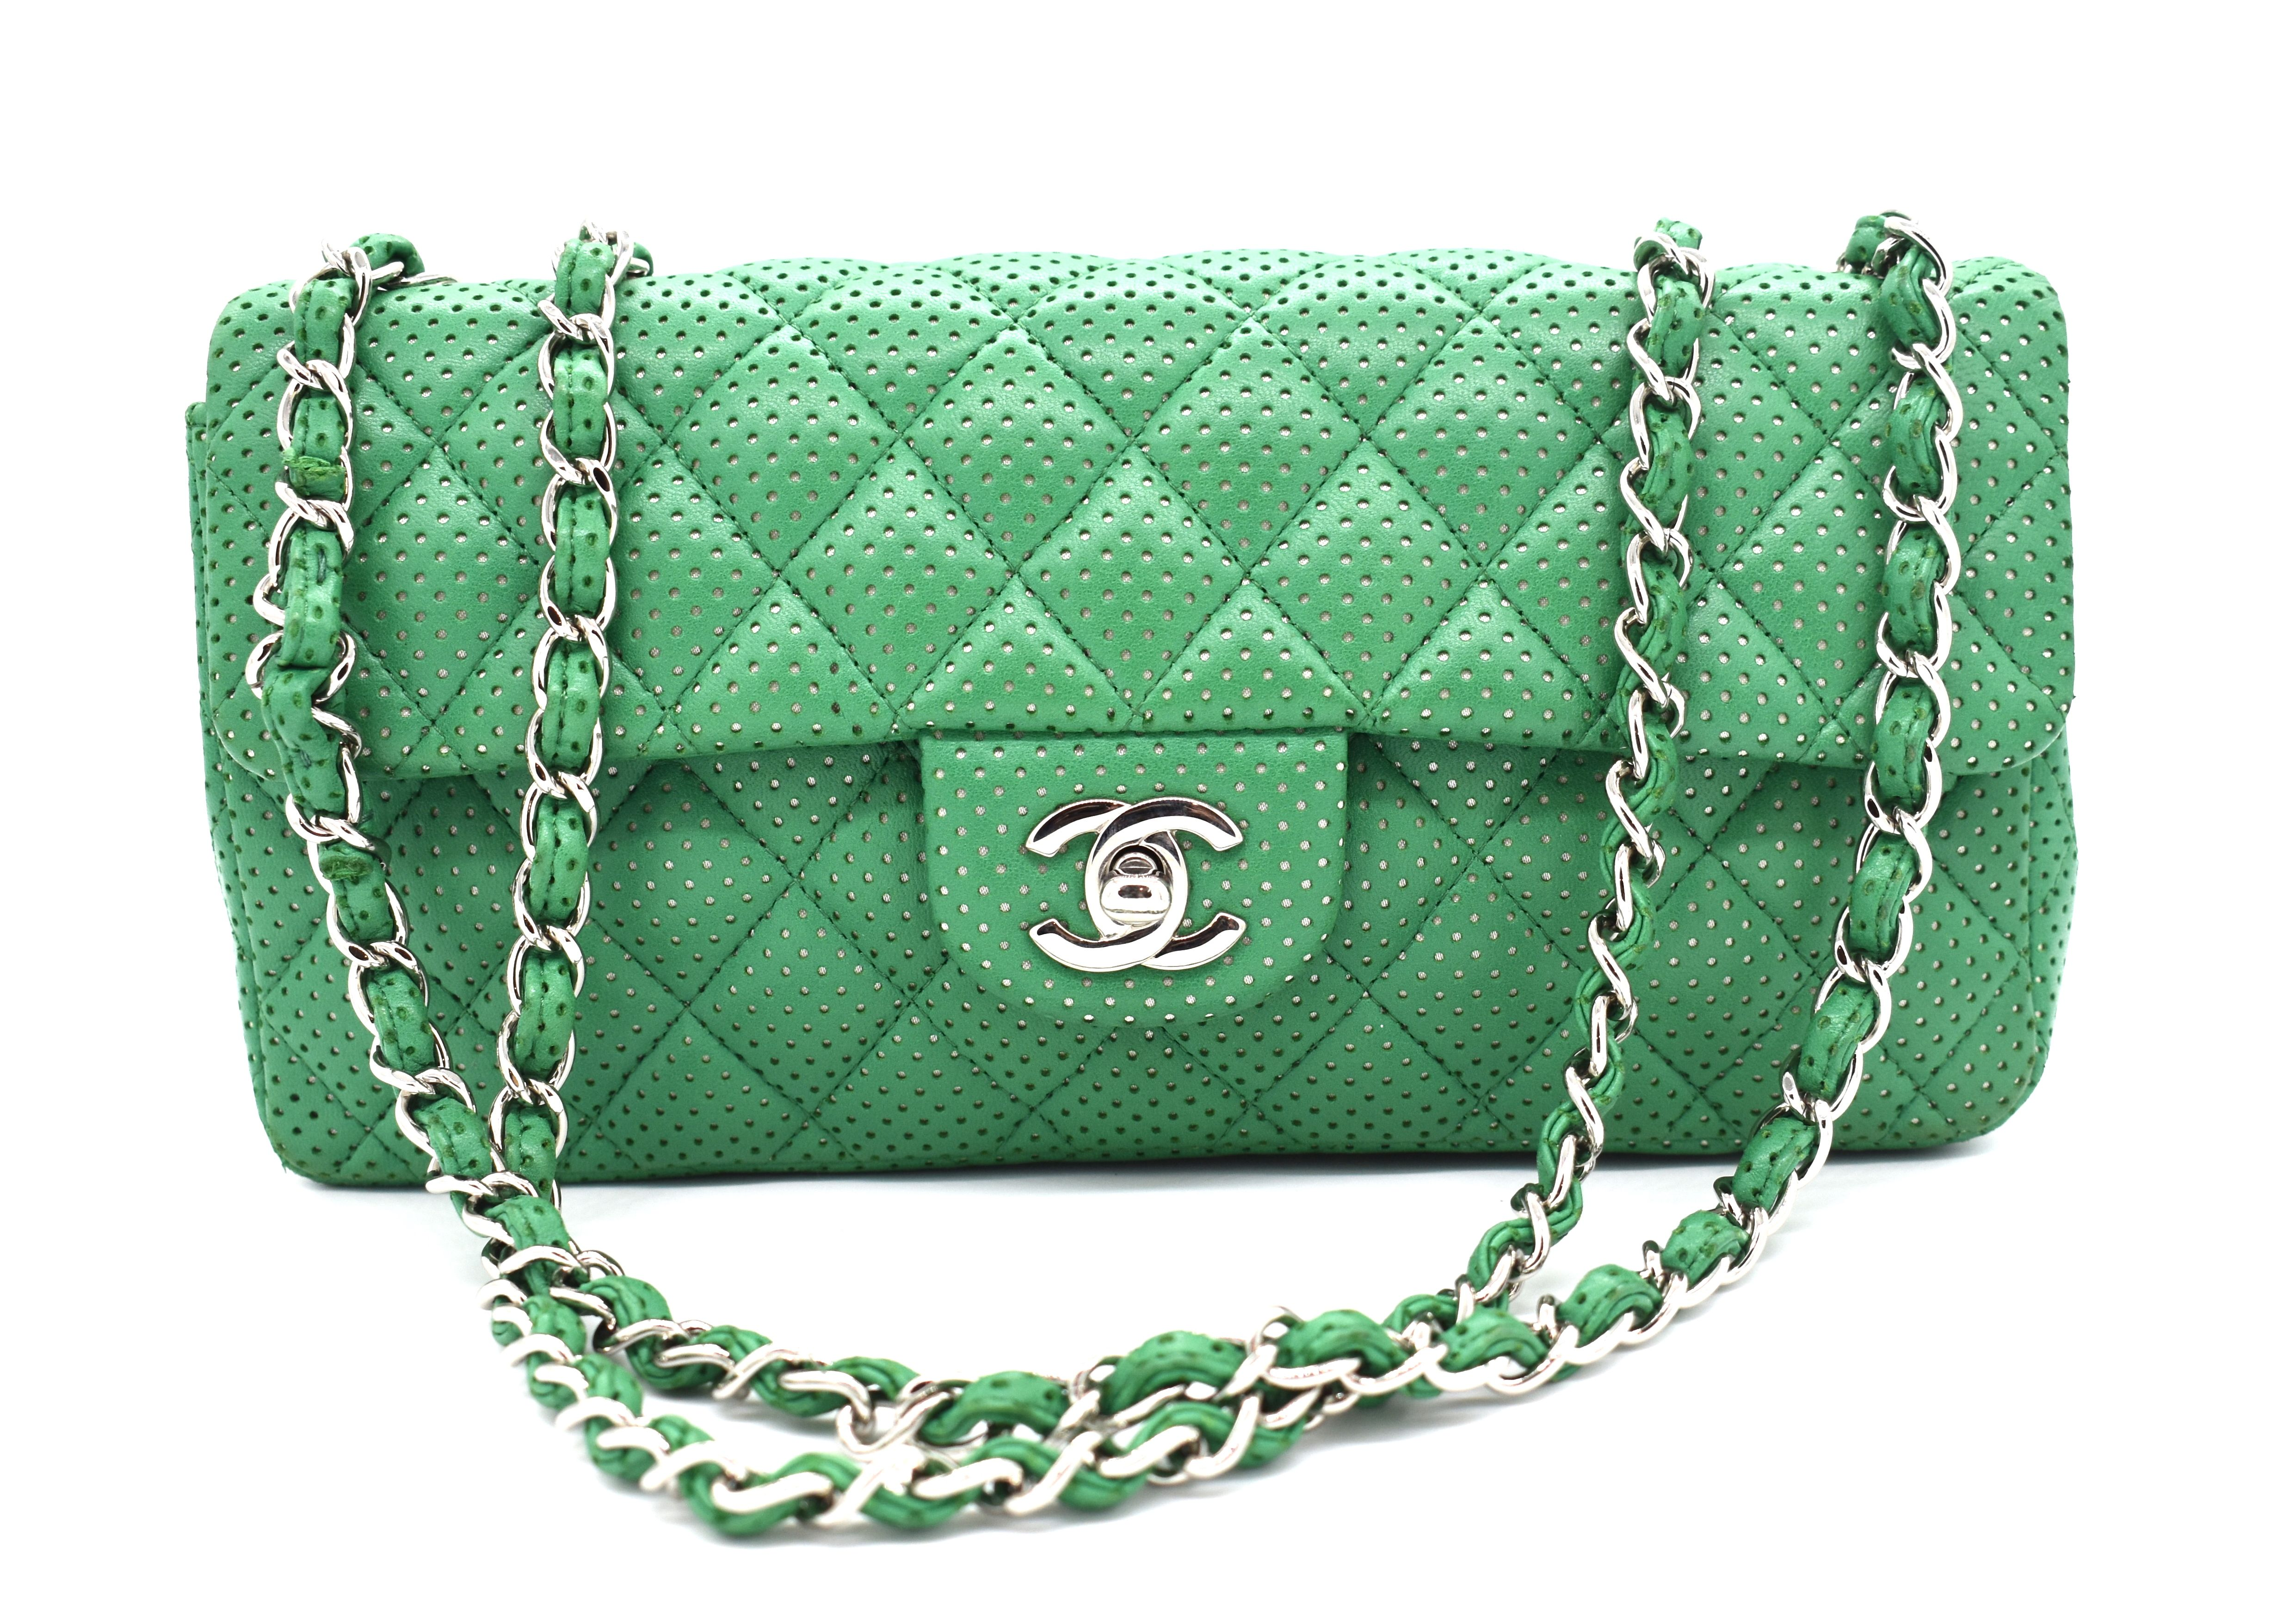 d8b28005b9b4 All the Chanel, all the time. Rent this green Chanel classic flap shoulder  bag from DesignerShare.